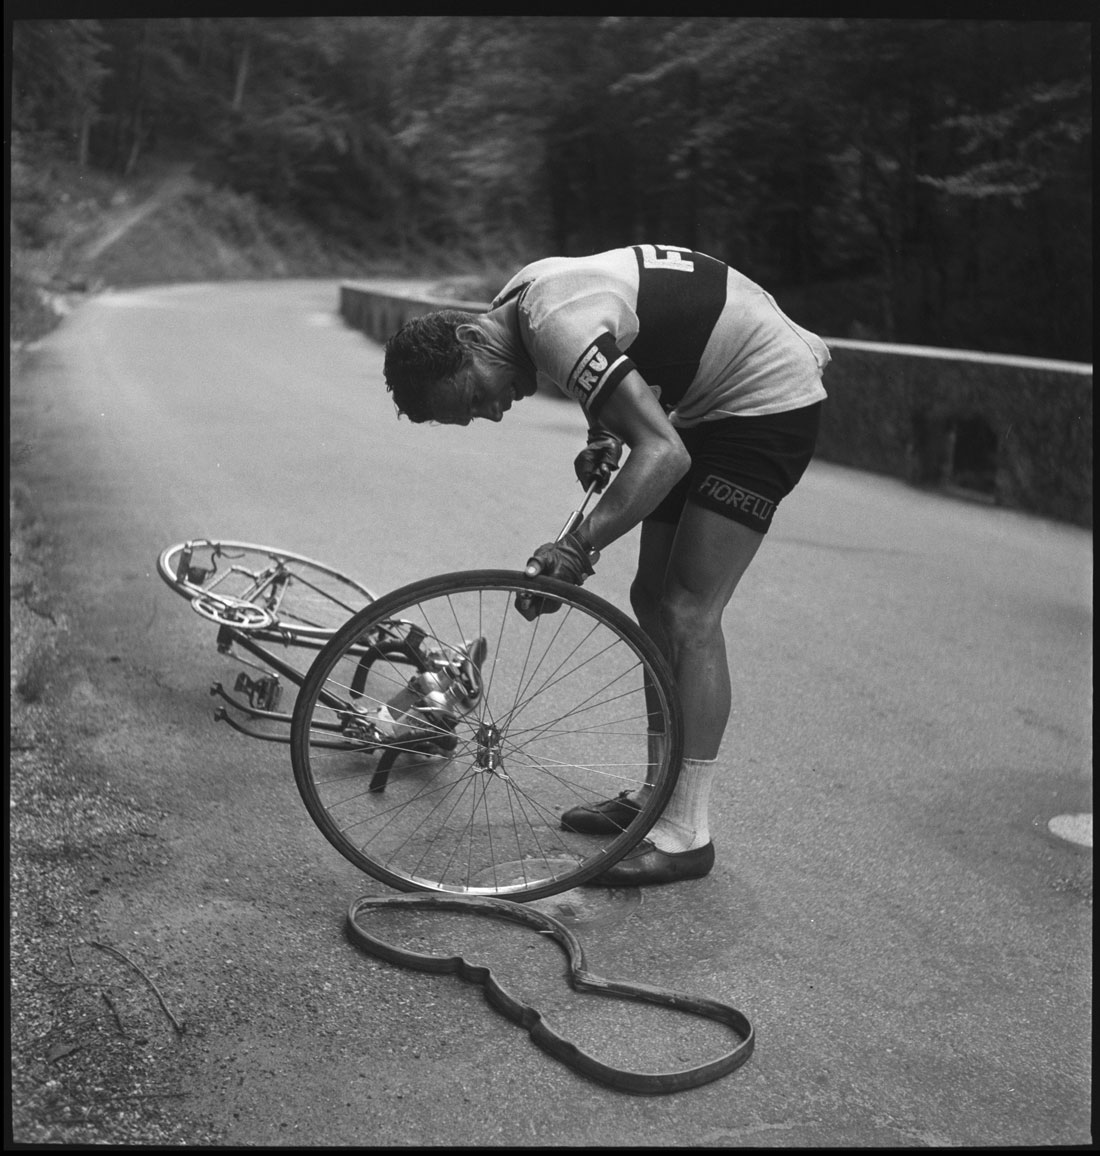 Anon. 'Walter Diggelmann repairs a tyre during the Tour de Suisse' 1950. © Swiss National Museum